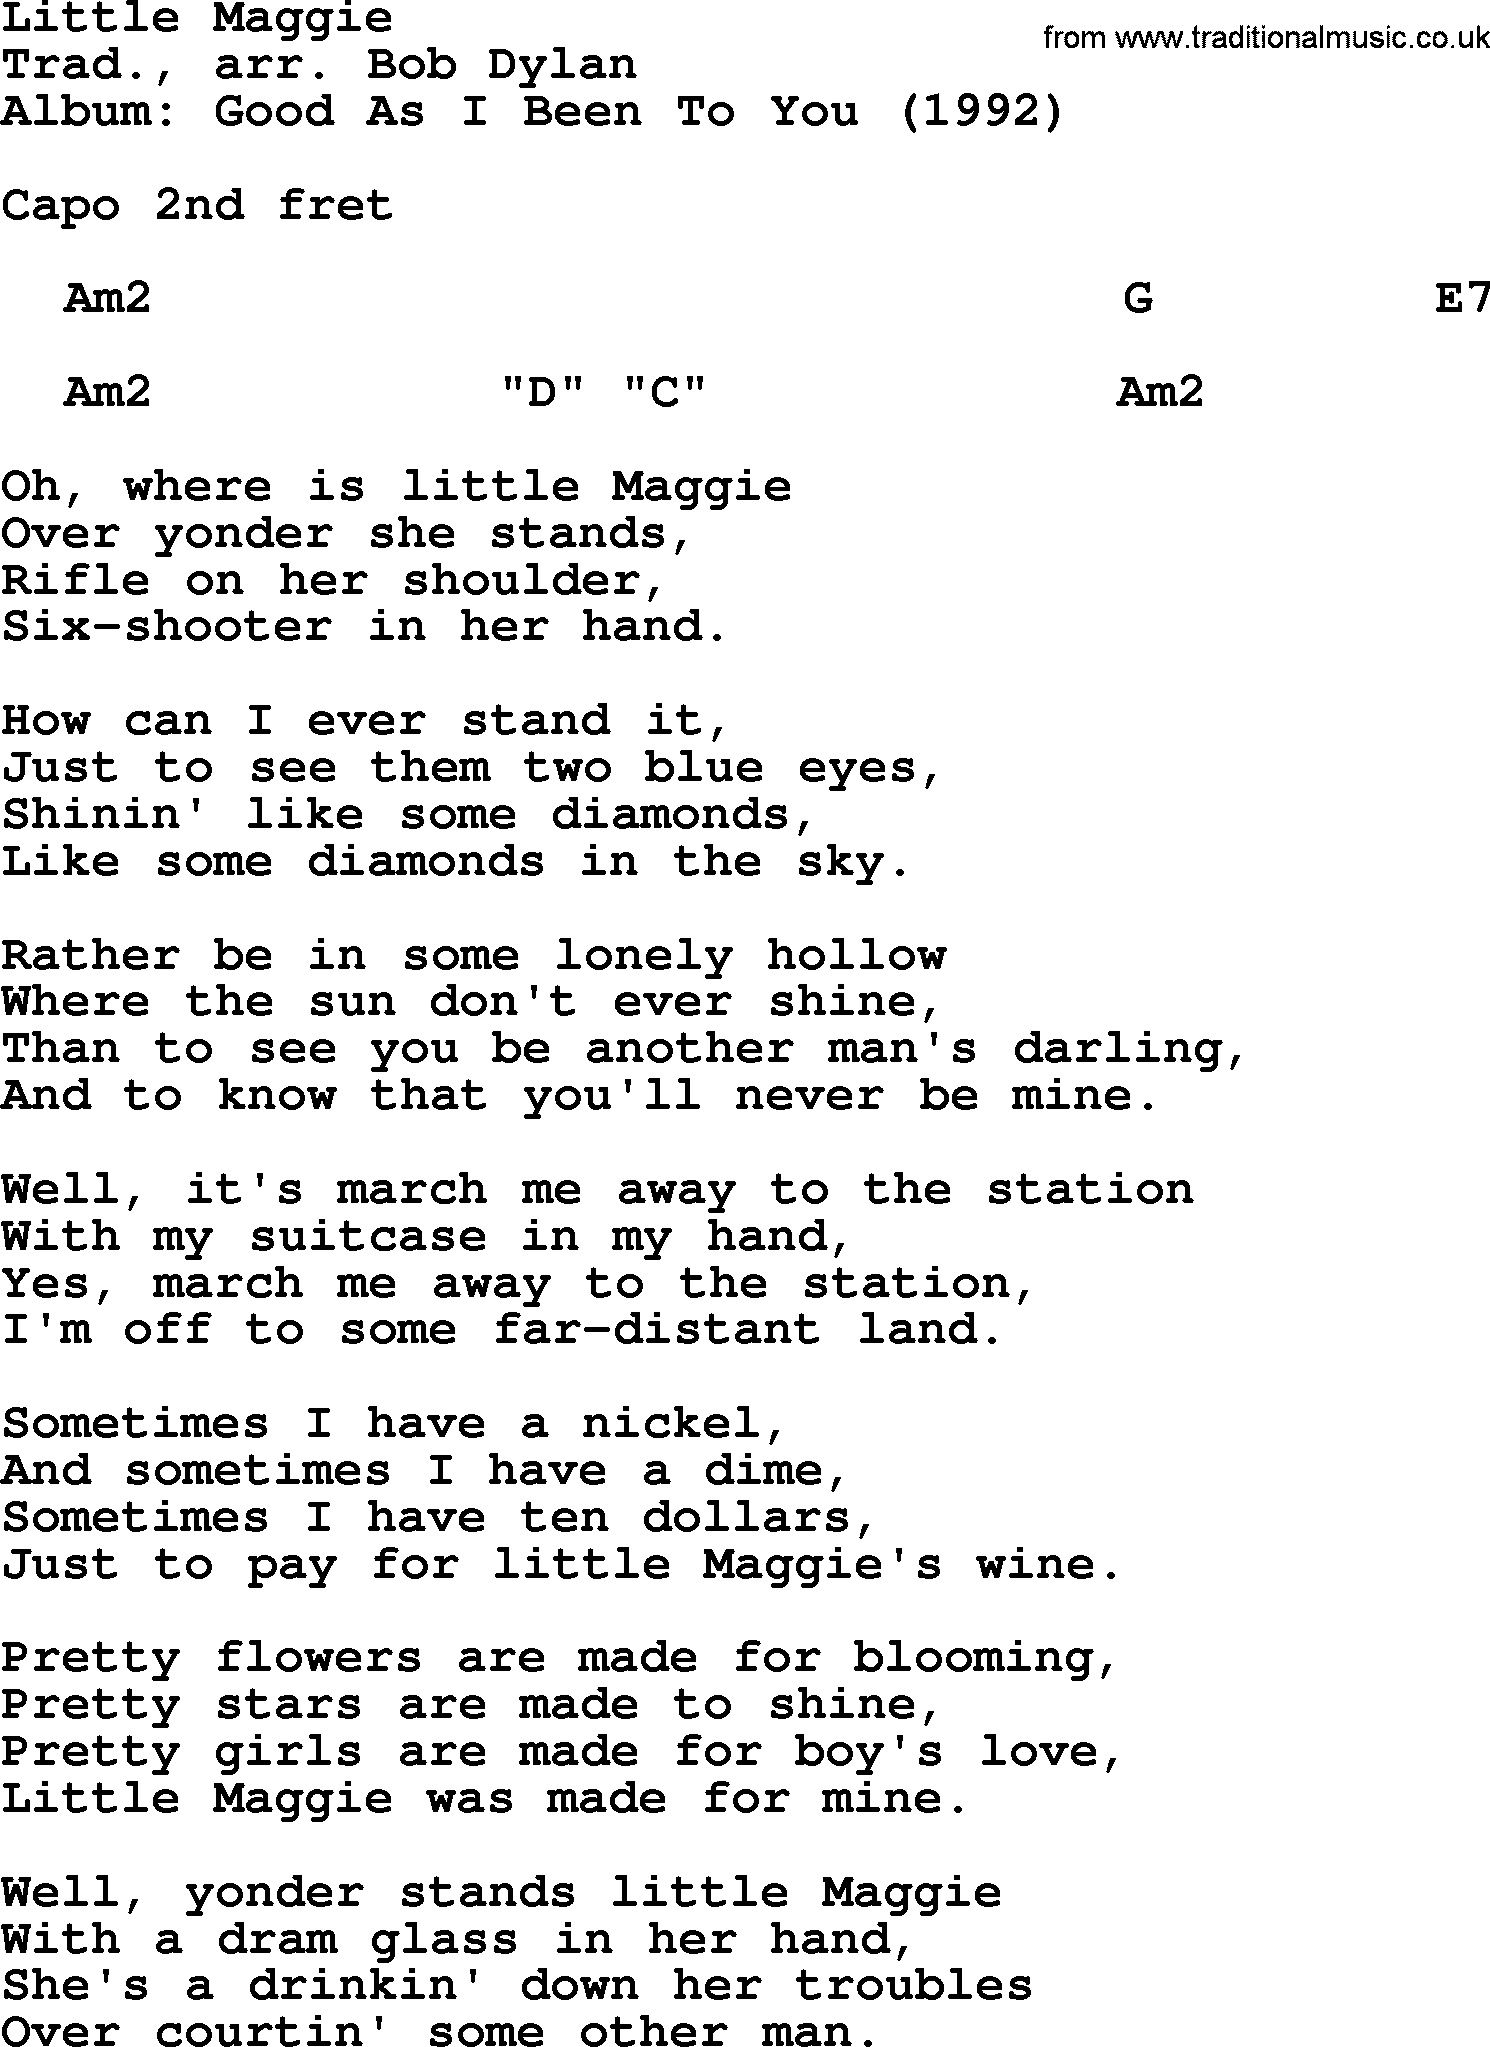 Bob Dylan Song Little Maggie Lyrics And Chords